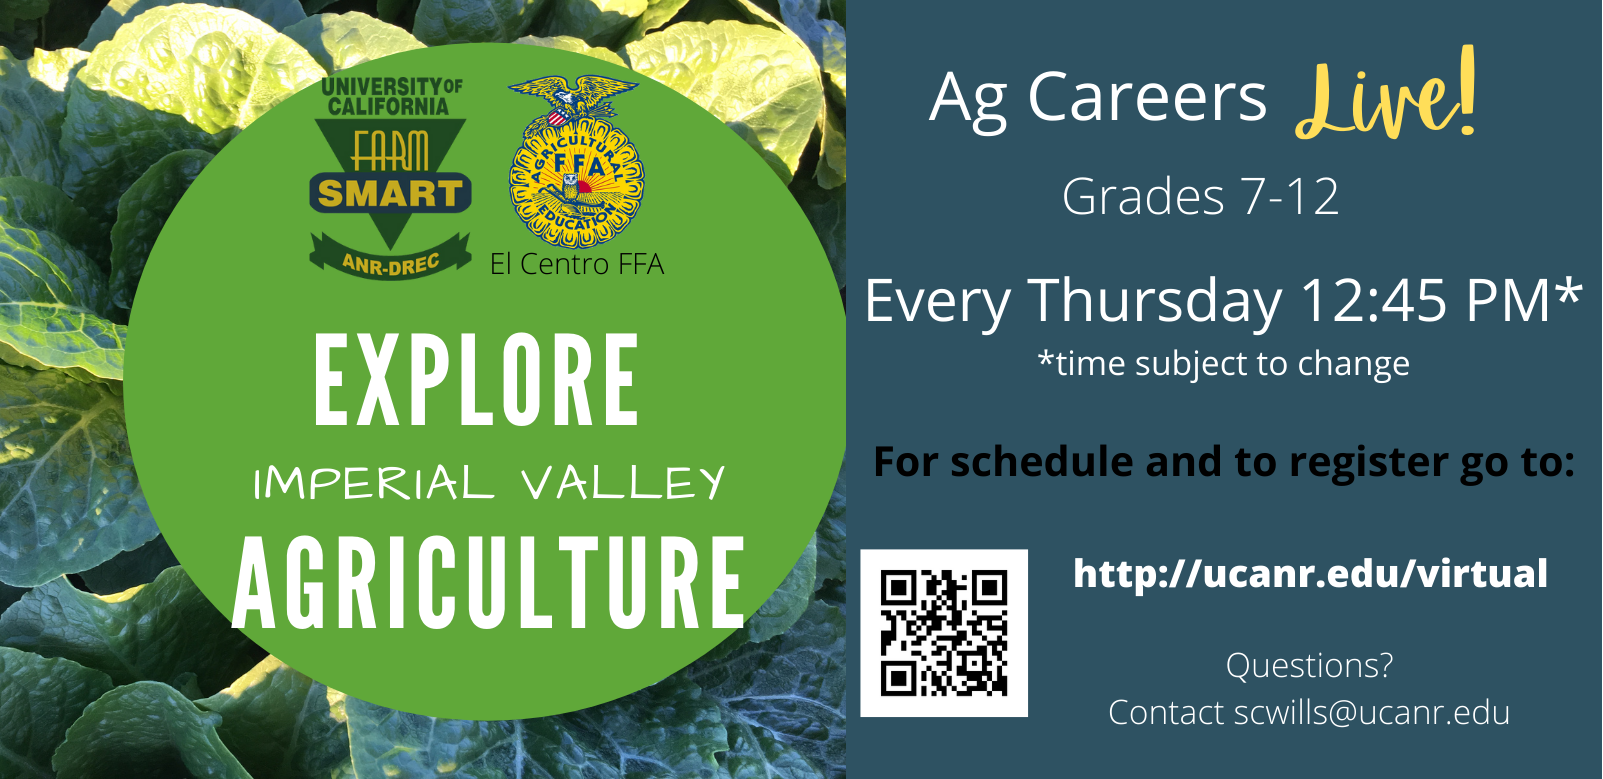 ag careers flyer